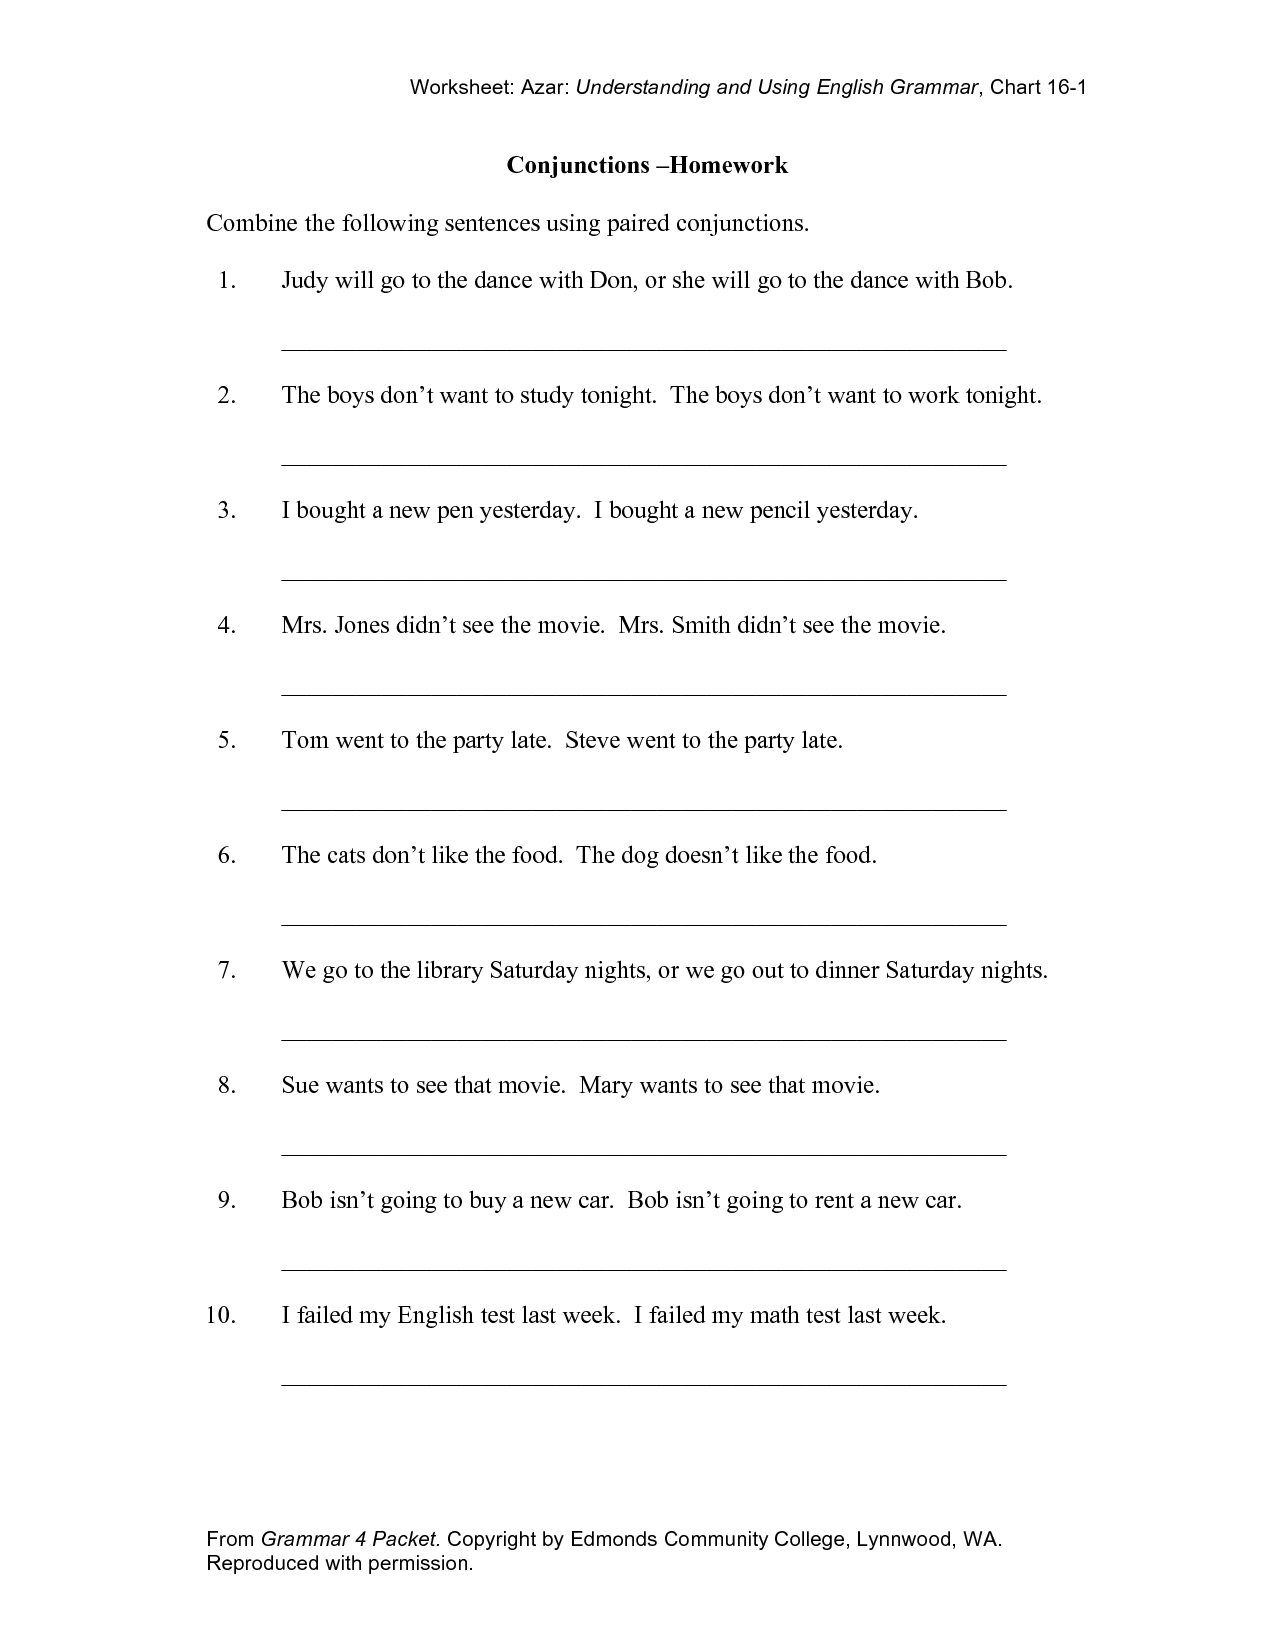 Worksheet Place Conjunctions